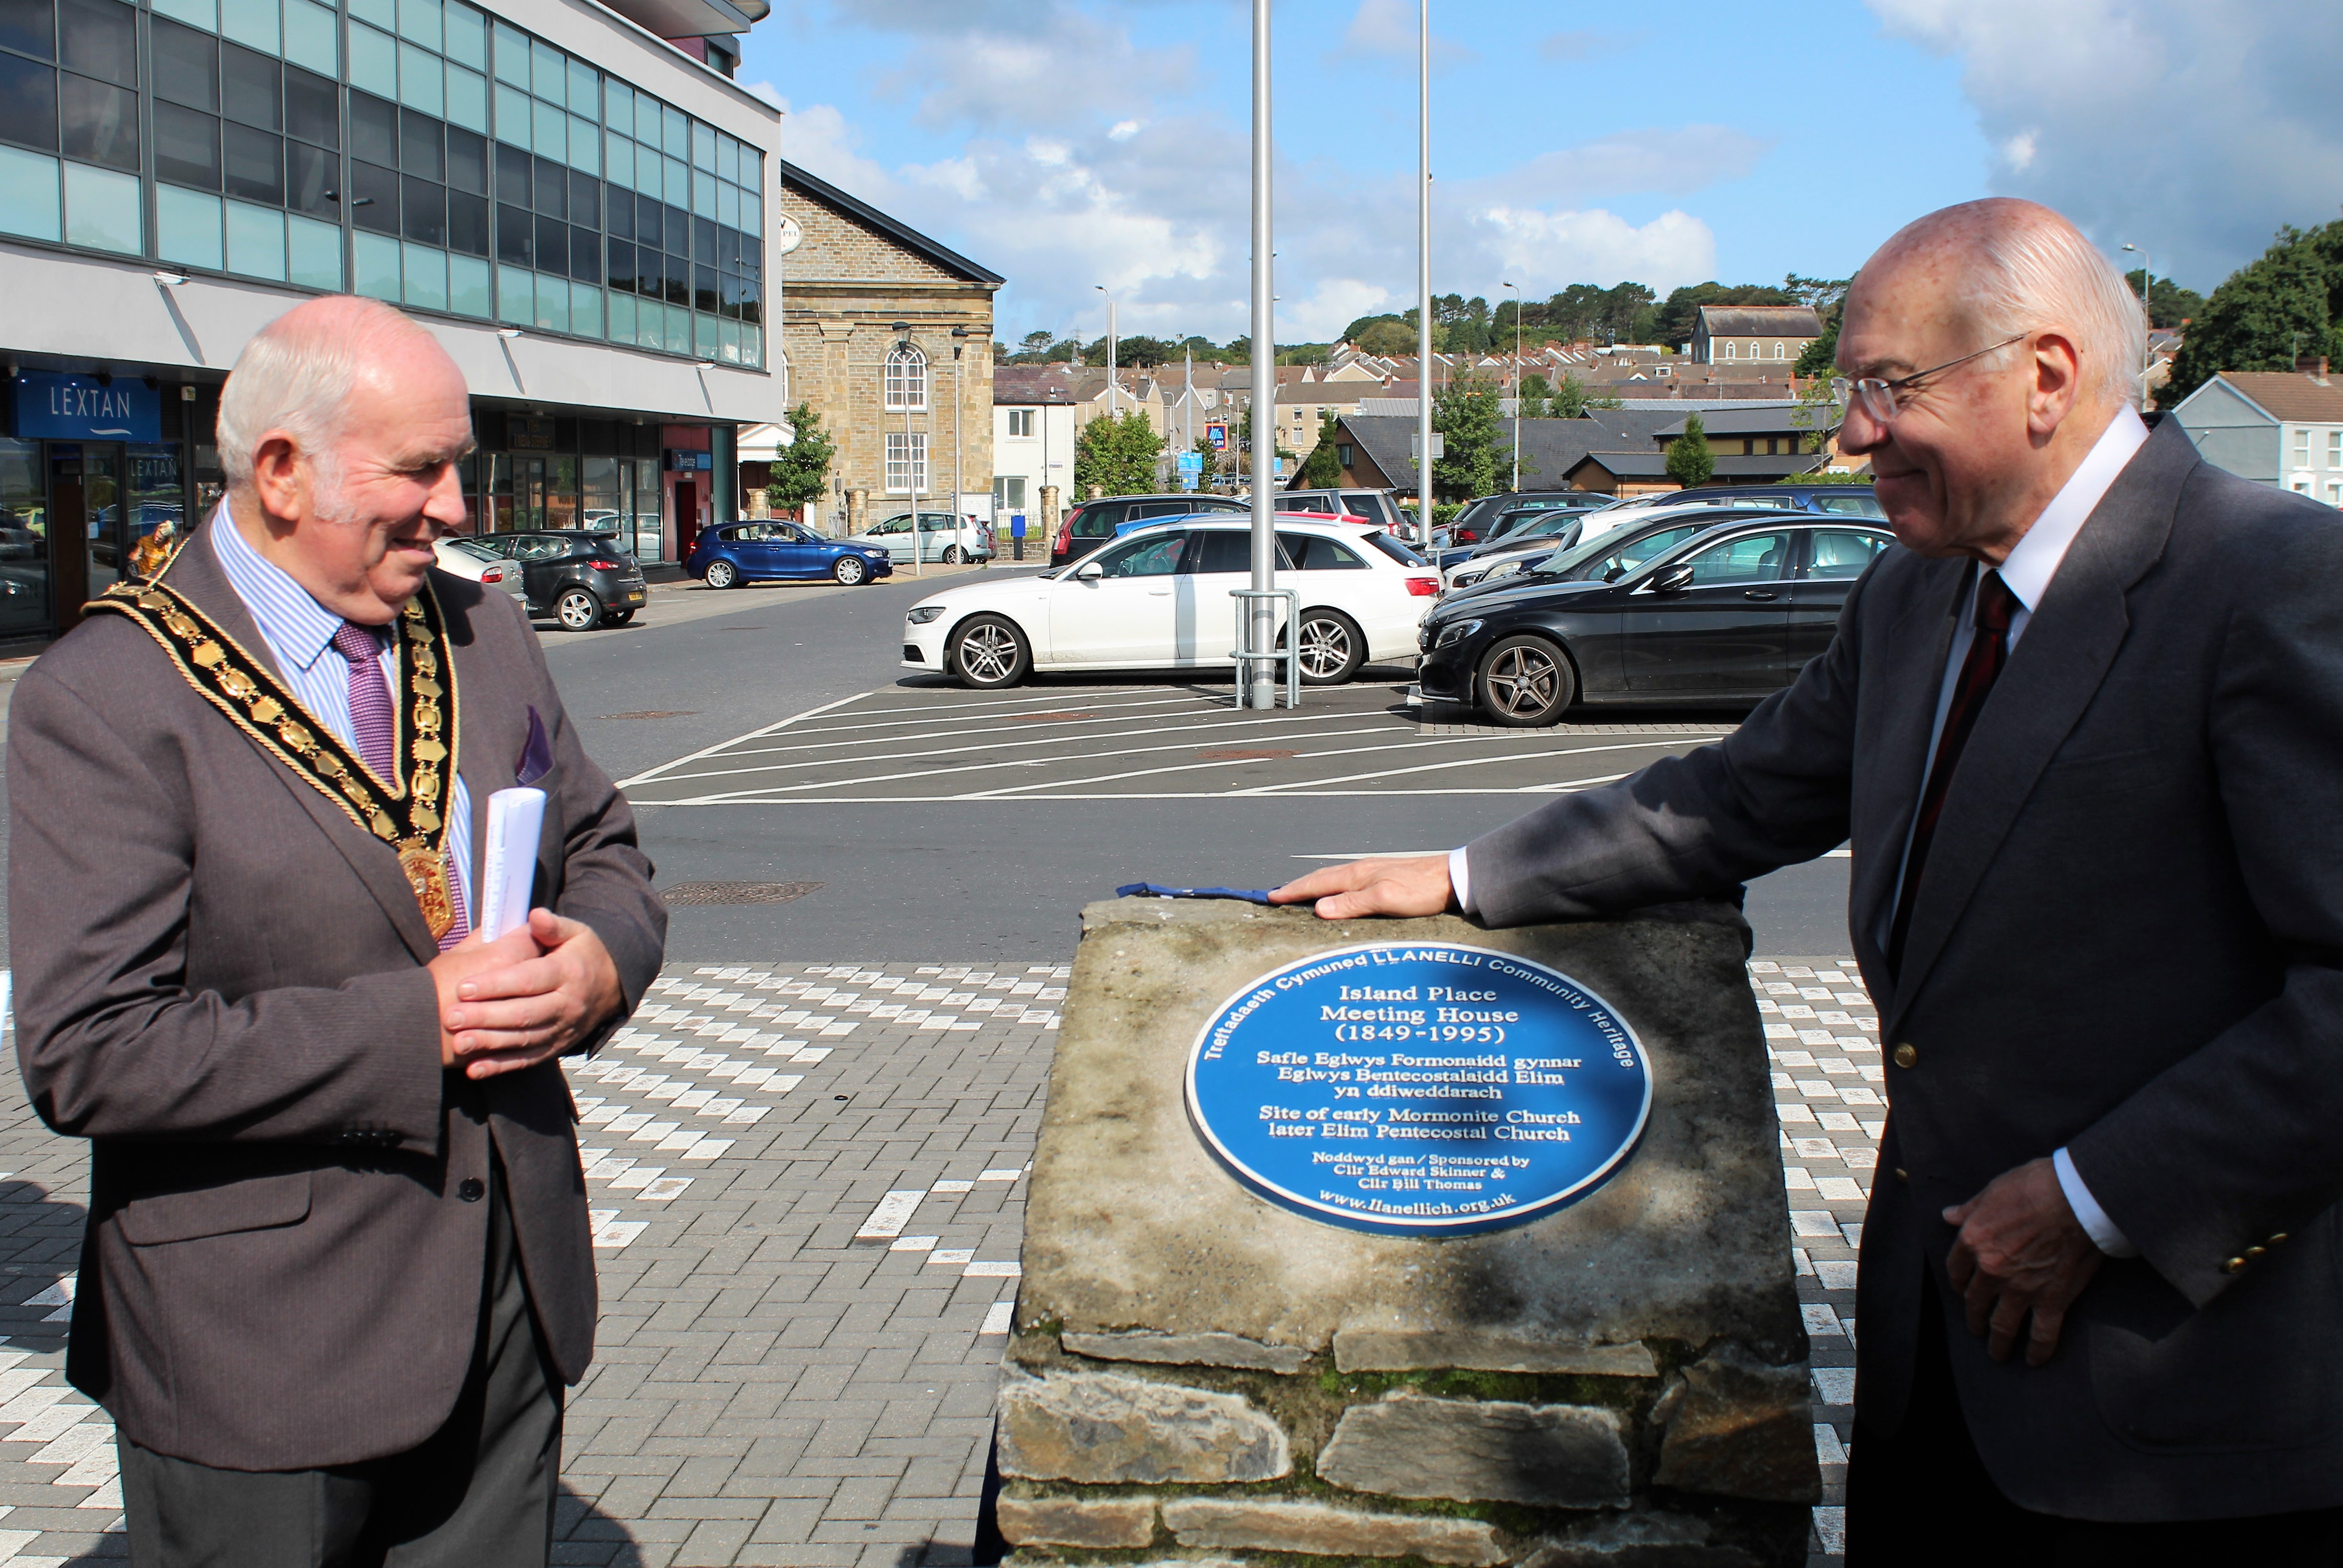 On the right, Dr. Ronald Dennis unveils the blue plaque to commemorate the historic Island Place Meeting House in Llanelli, Wales. On the left stands the Chair of the Carmathenshire County Council, Councilor Mansel Charles, Plaid Cymru of Llanegwad on Aug. 25, 2018.